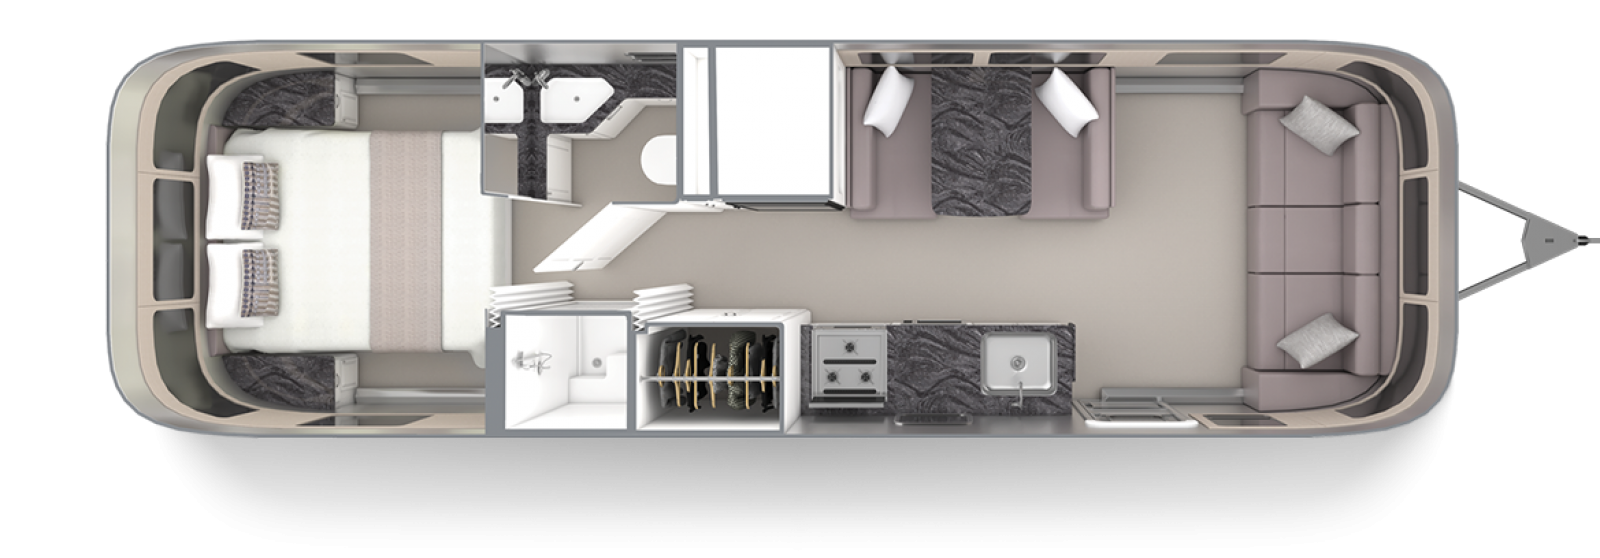 Airstream-Classic-30RB-Comfort-White-Earl-Grey-Floor-Plan